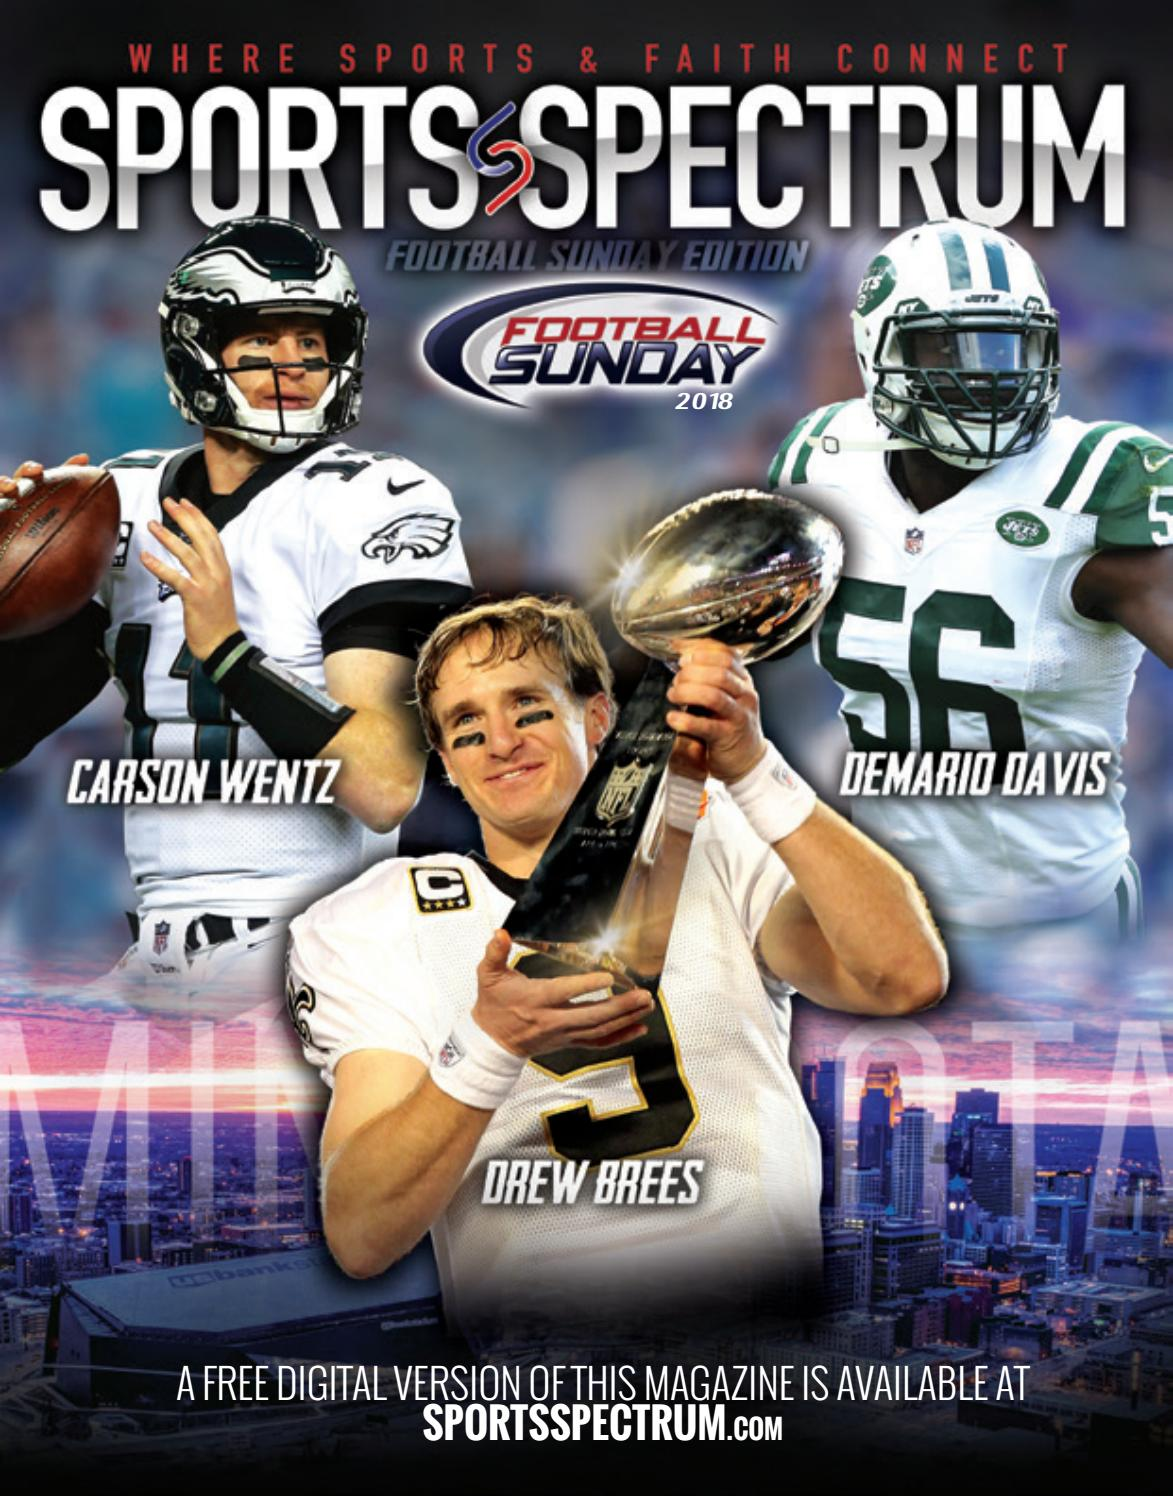 Sports Spectrum: Football Sunday 2018 Special Edition by Sports Spectrum -  issuu